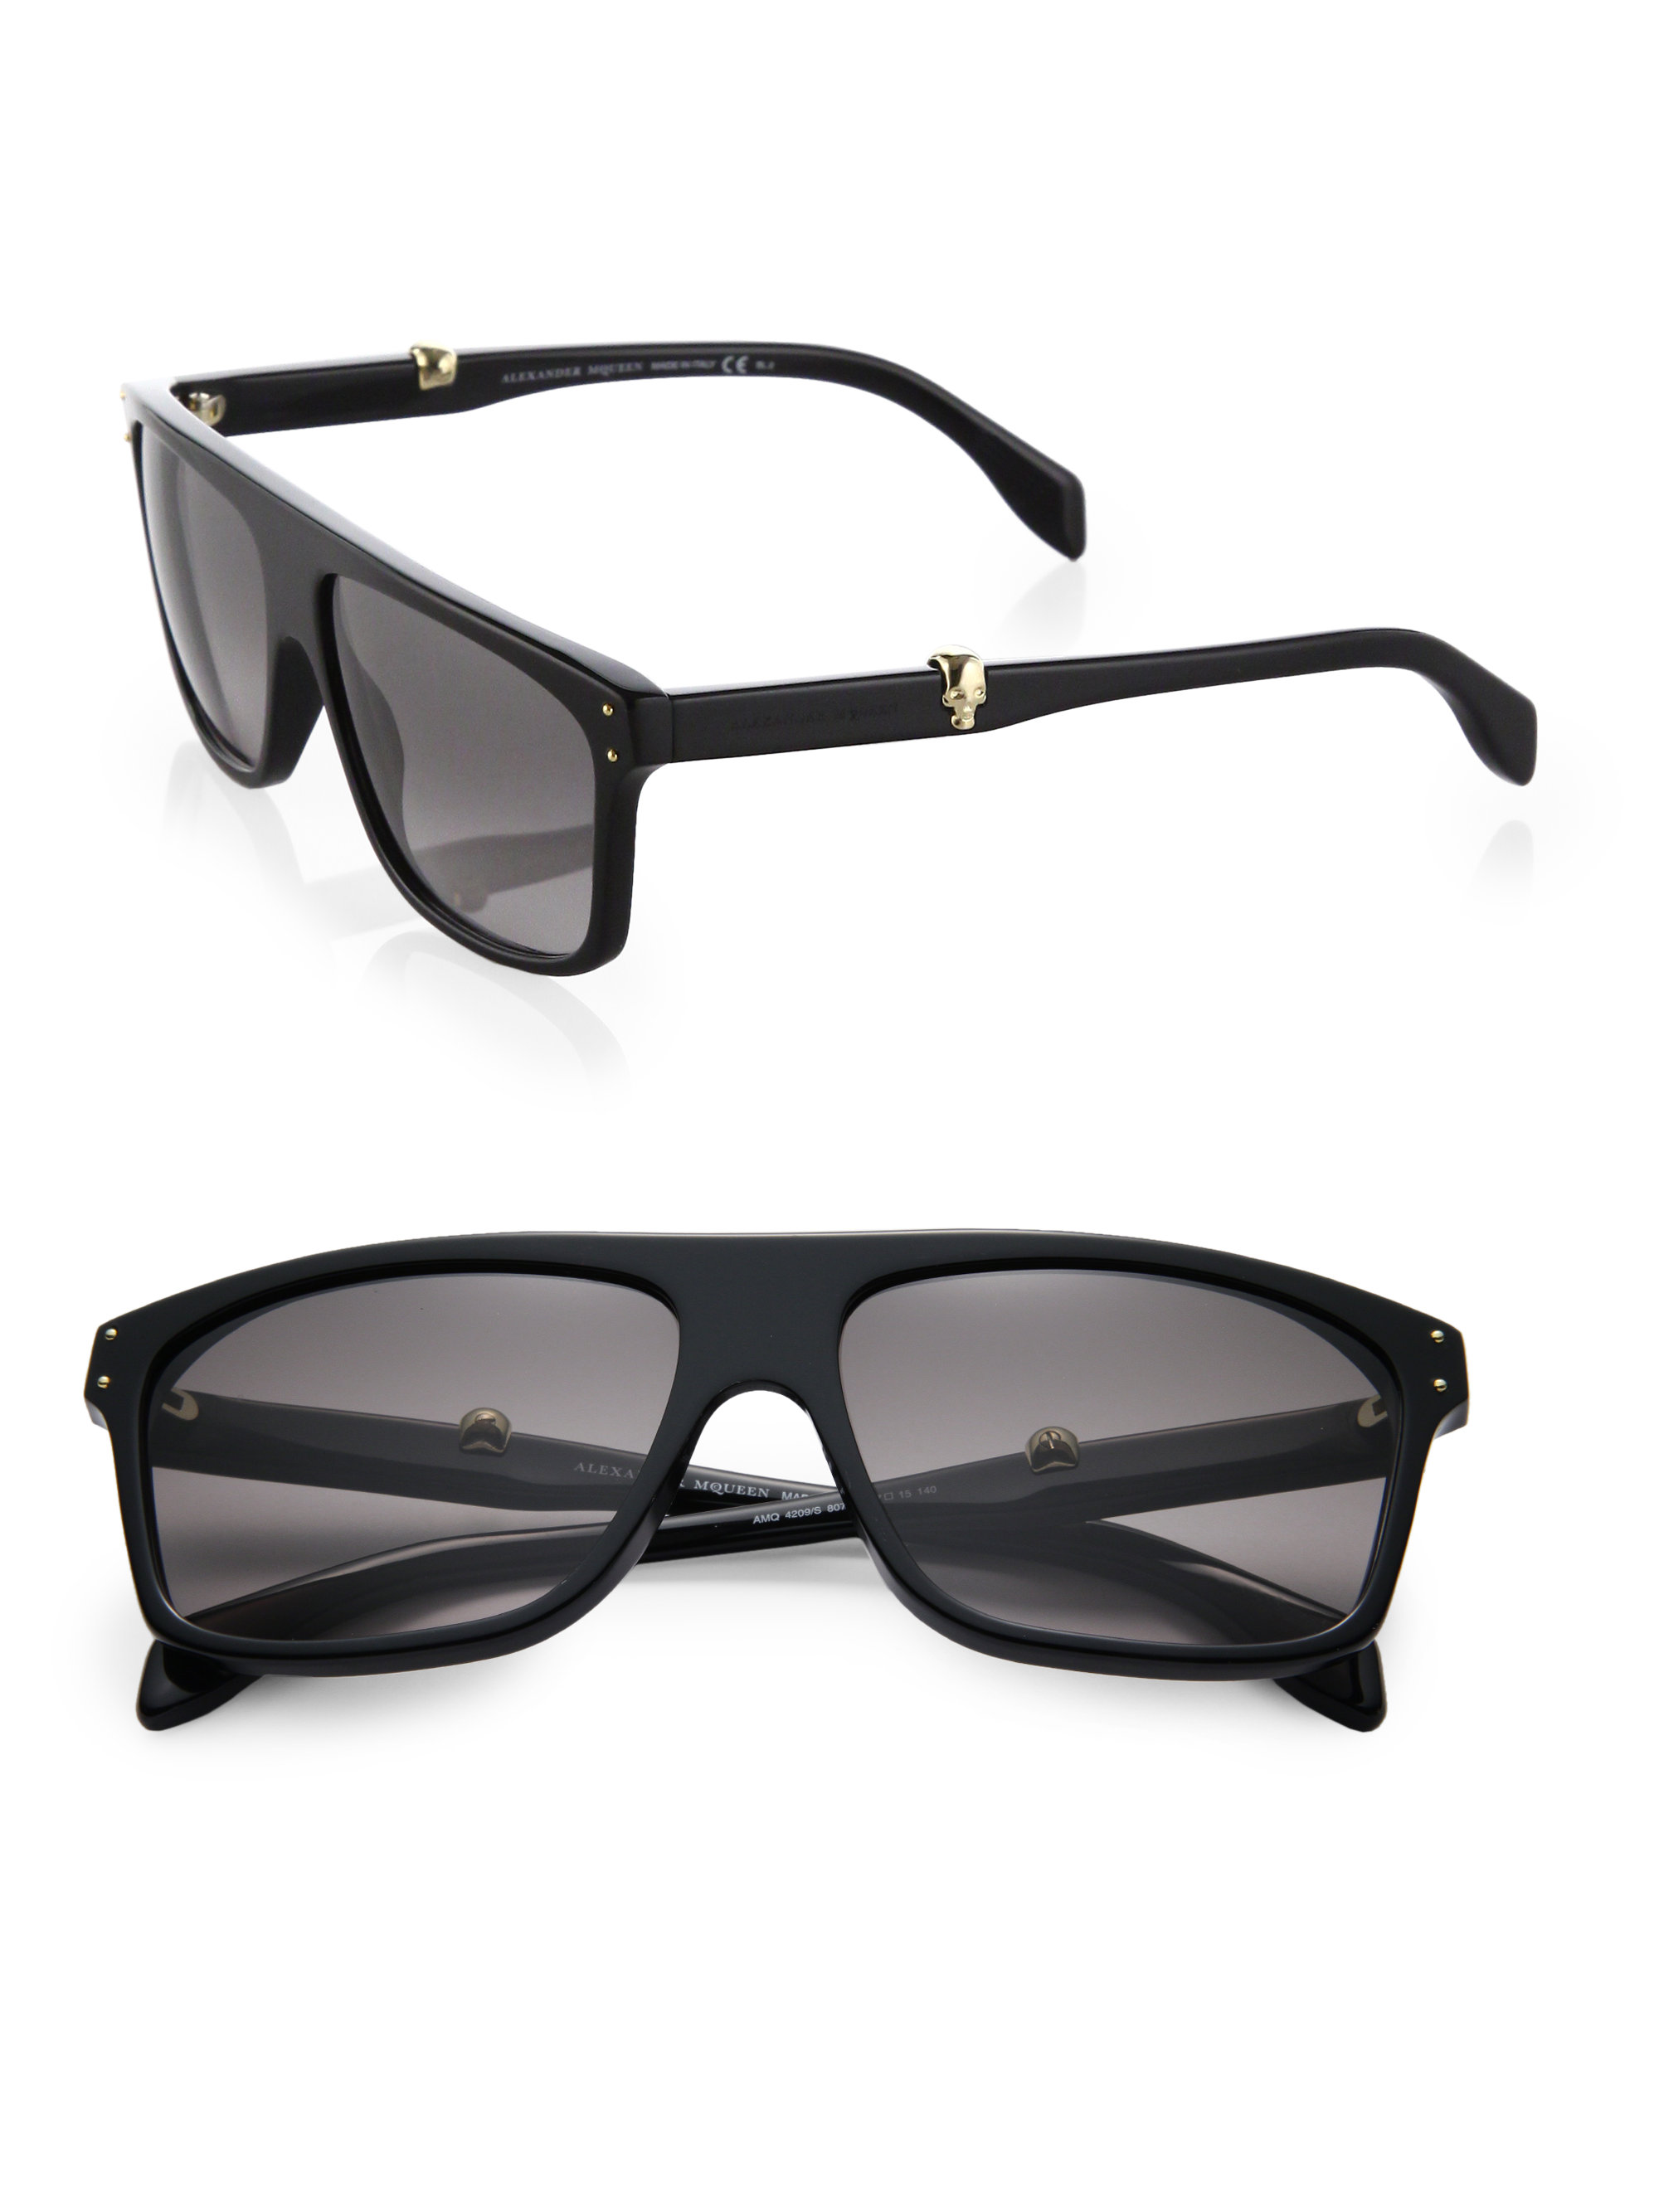 Alexander Mcqueen Sunglasses  alexander mcqueen skull wayfarer acetate sunglasses in black for